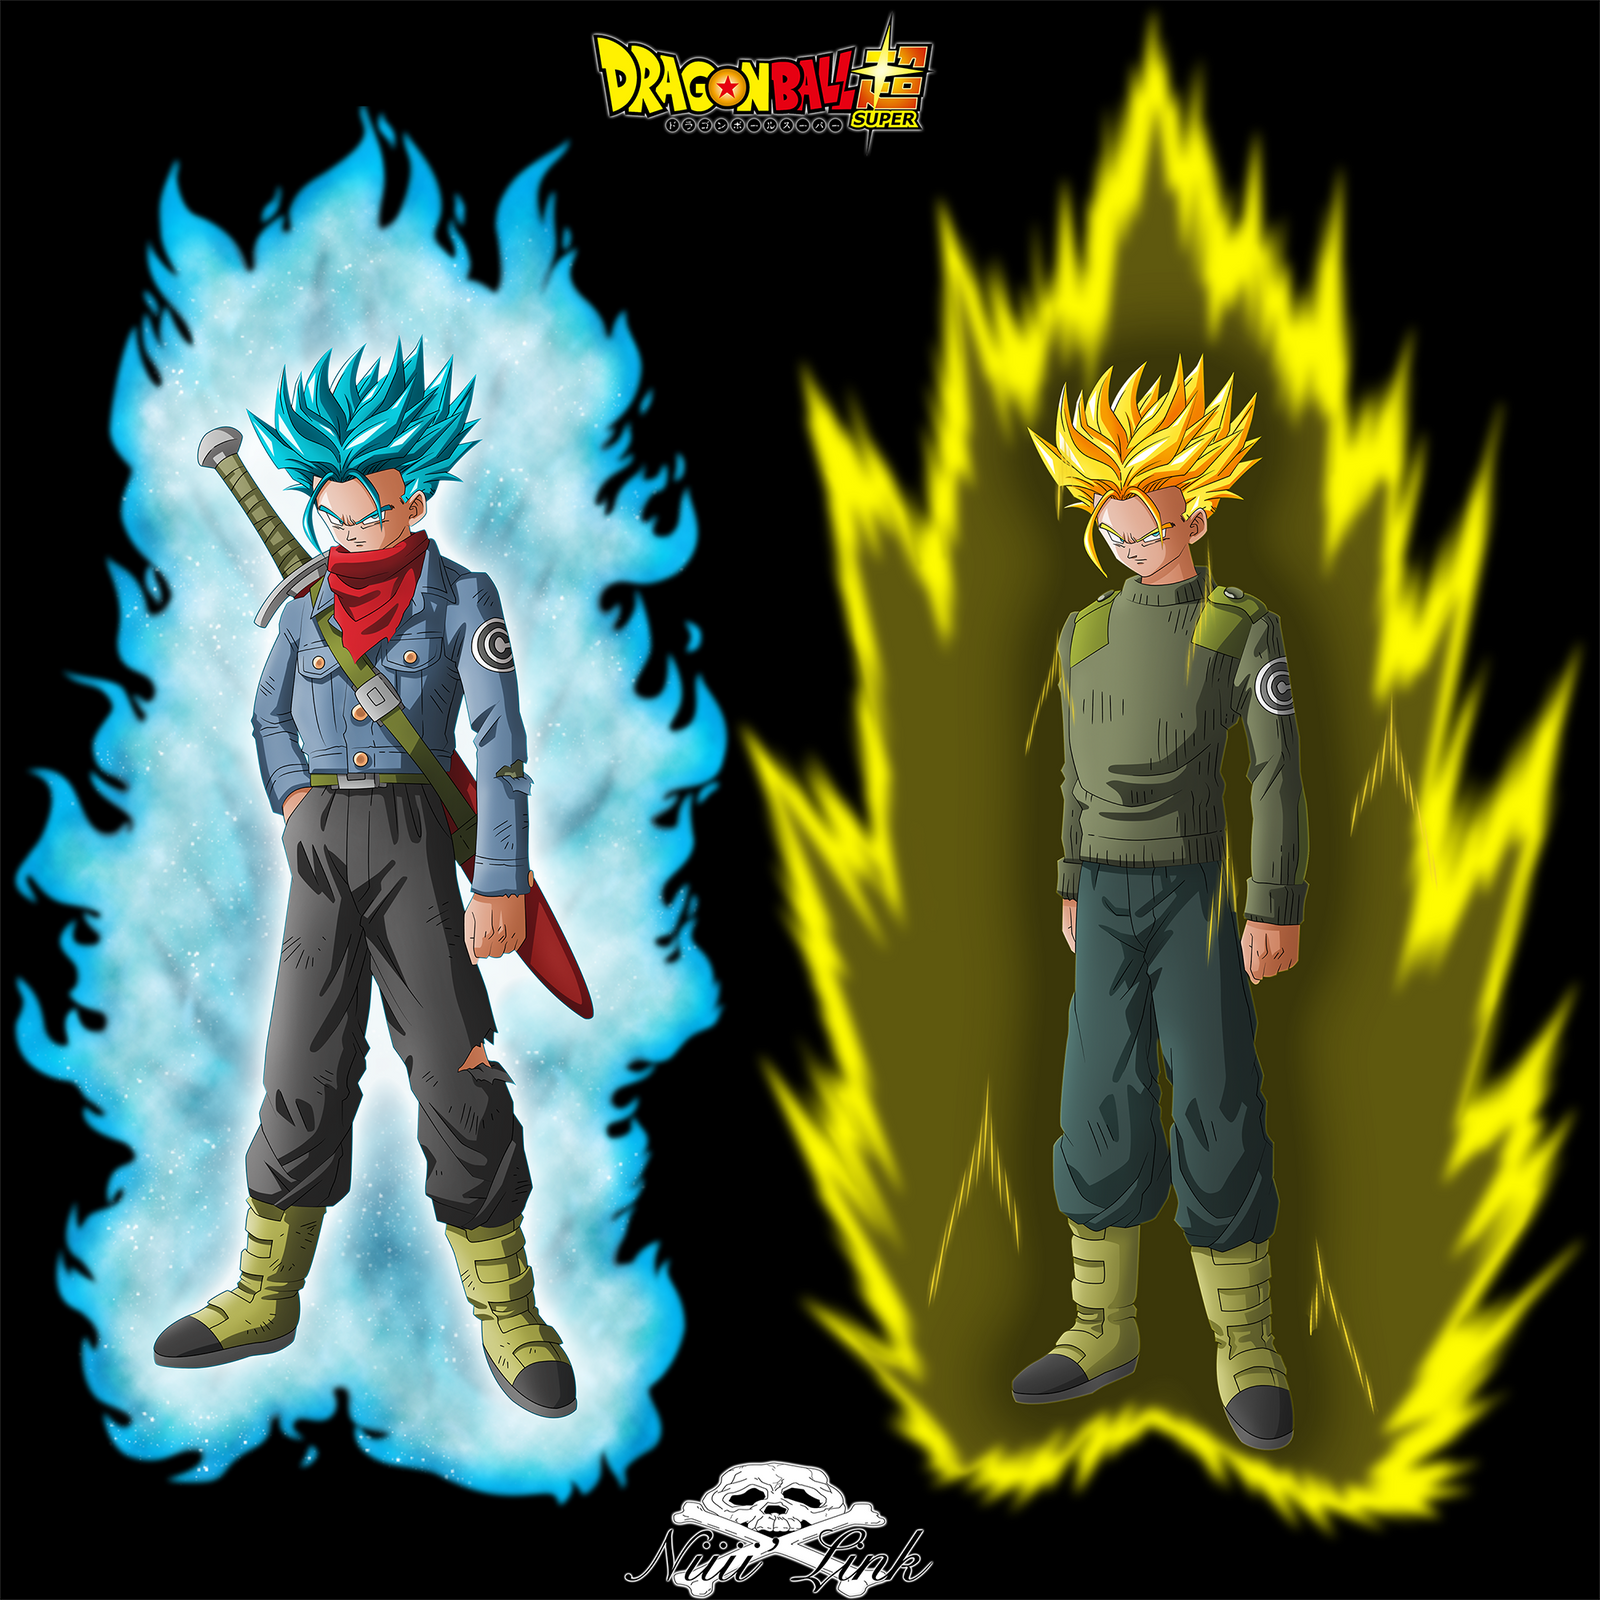 [DBS] Mirai Trunks SSGSS By Niiii-Link On DeviantArt